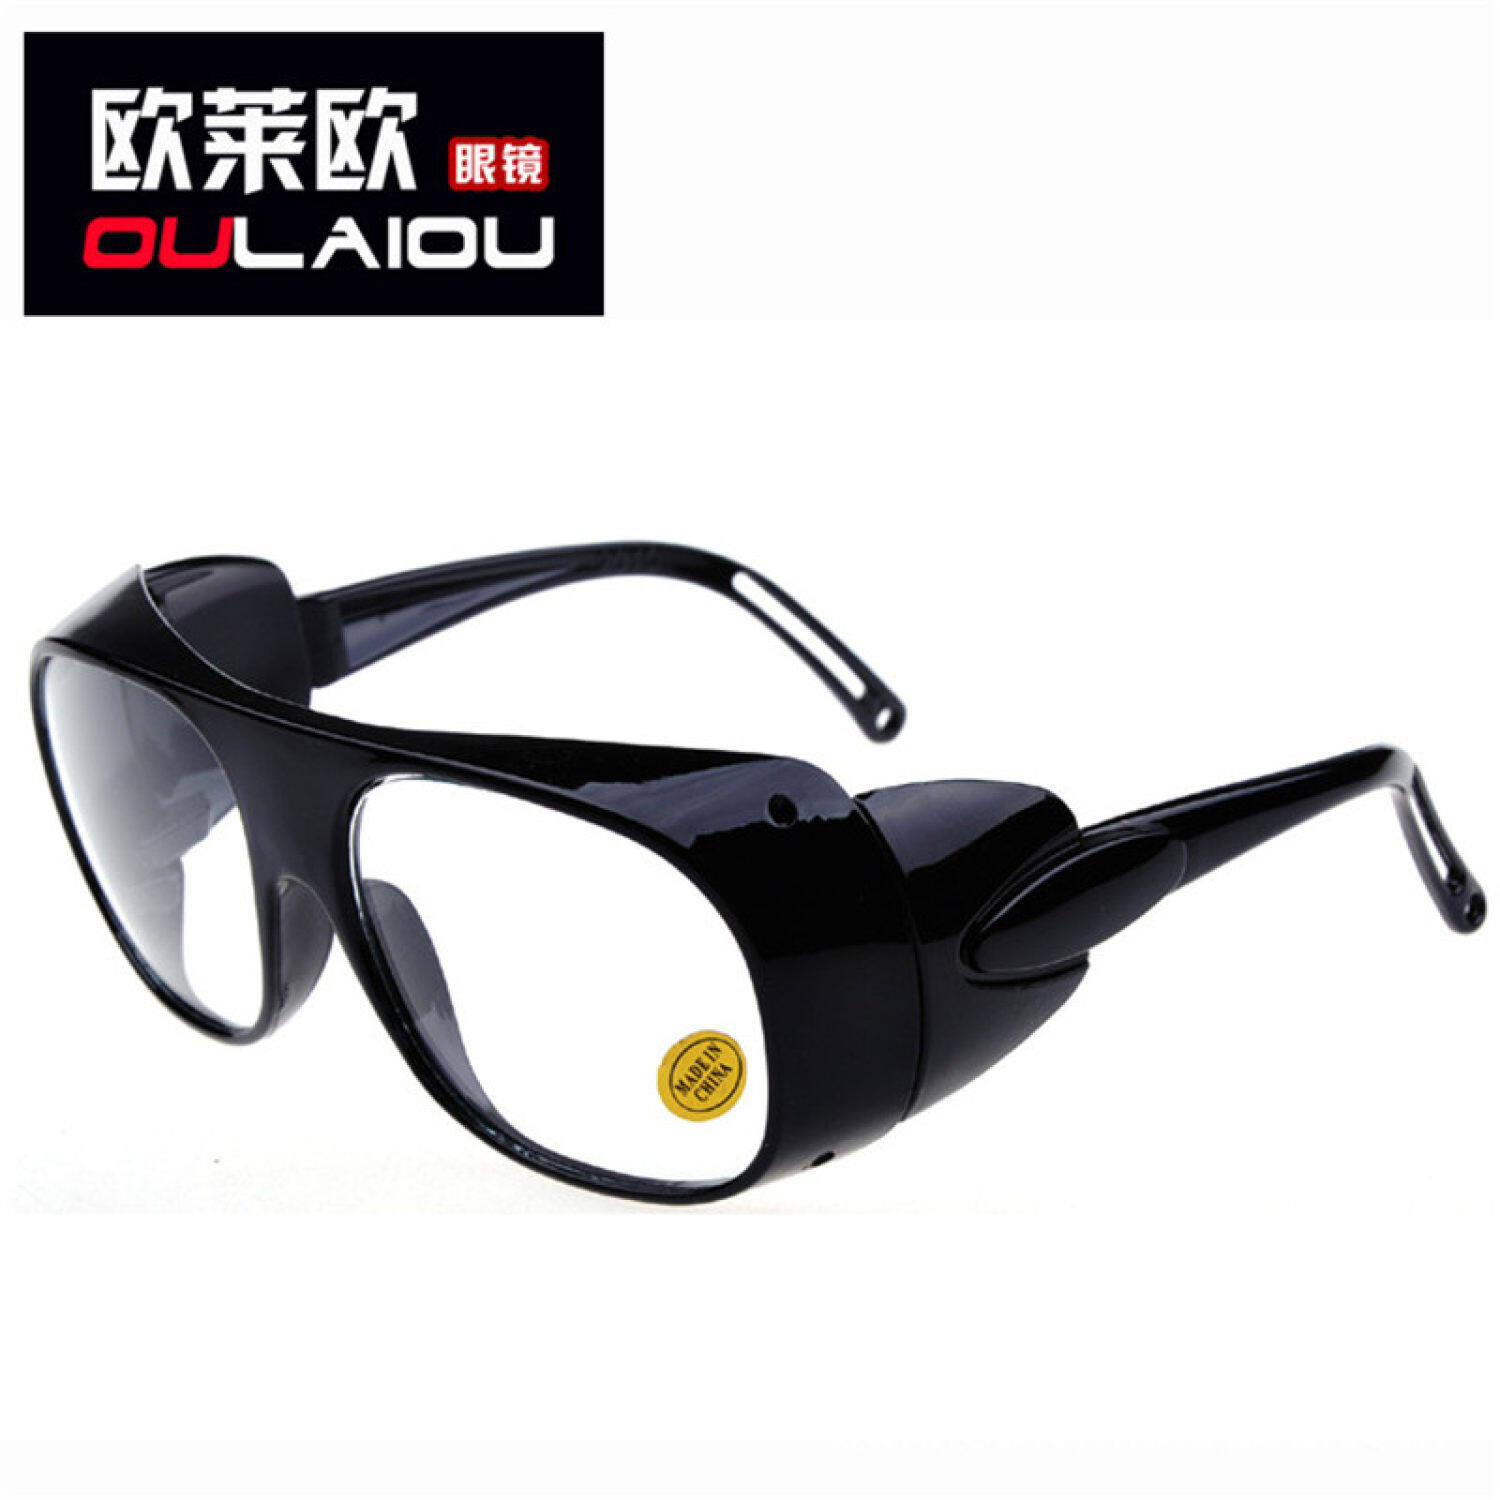 OULAIOU Factory Outlet Welding Mirror Burn Glasses Anti-arc Glasses Argon Arc Welding Safety Goggles